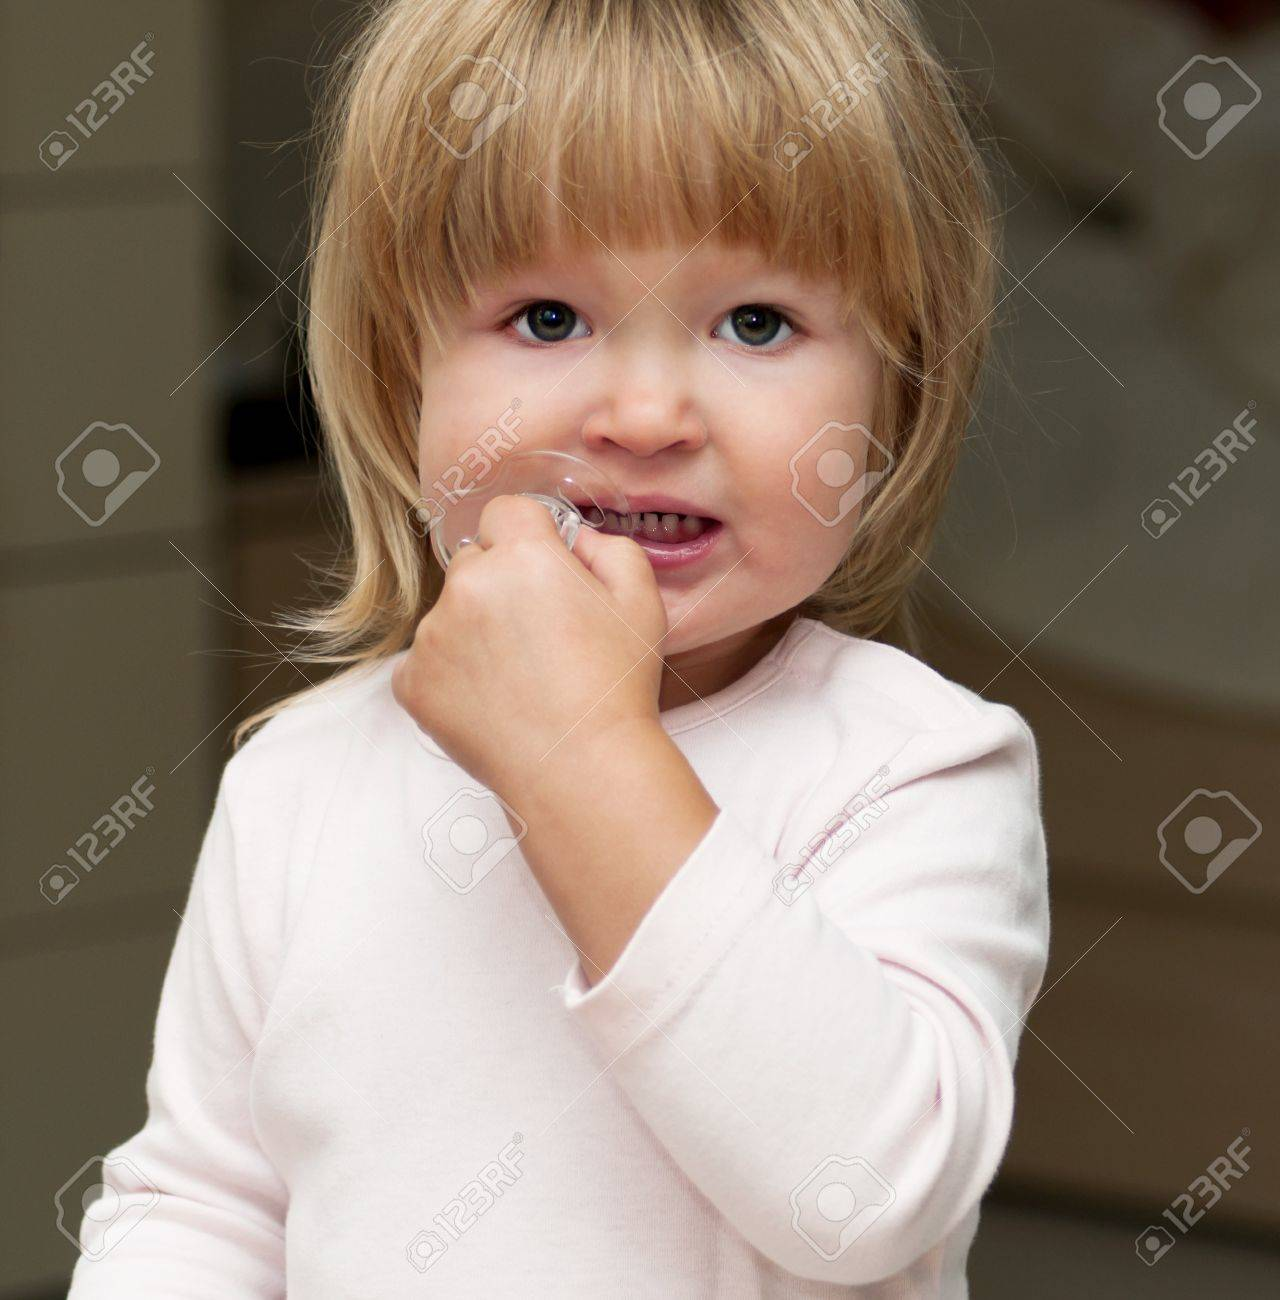 Little girl chewing on pacifier - 13144398